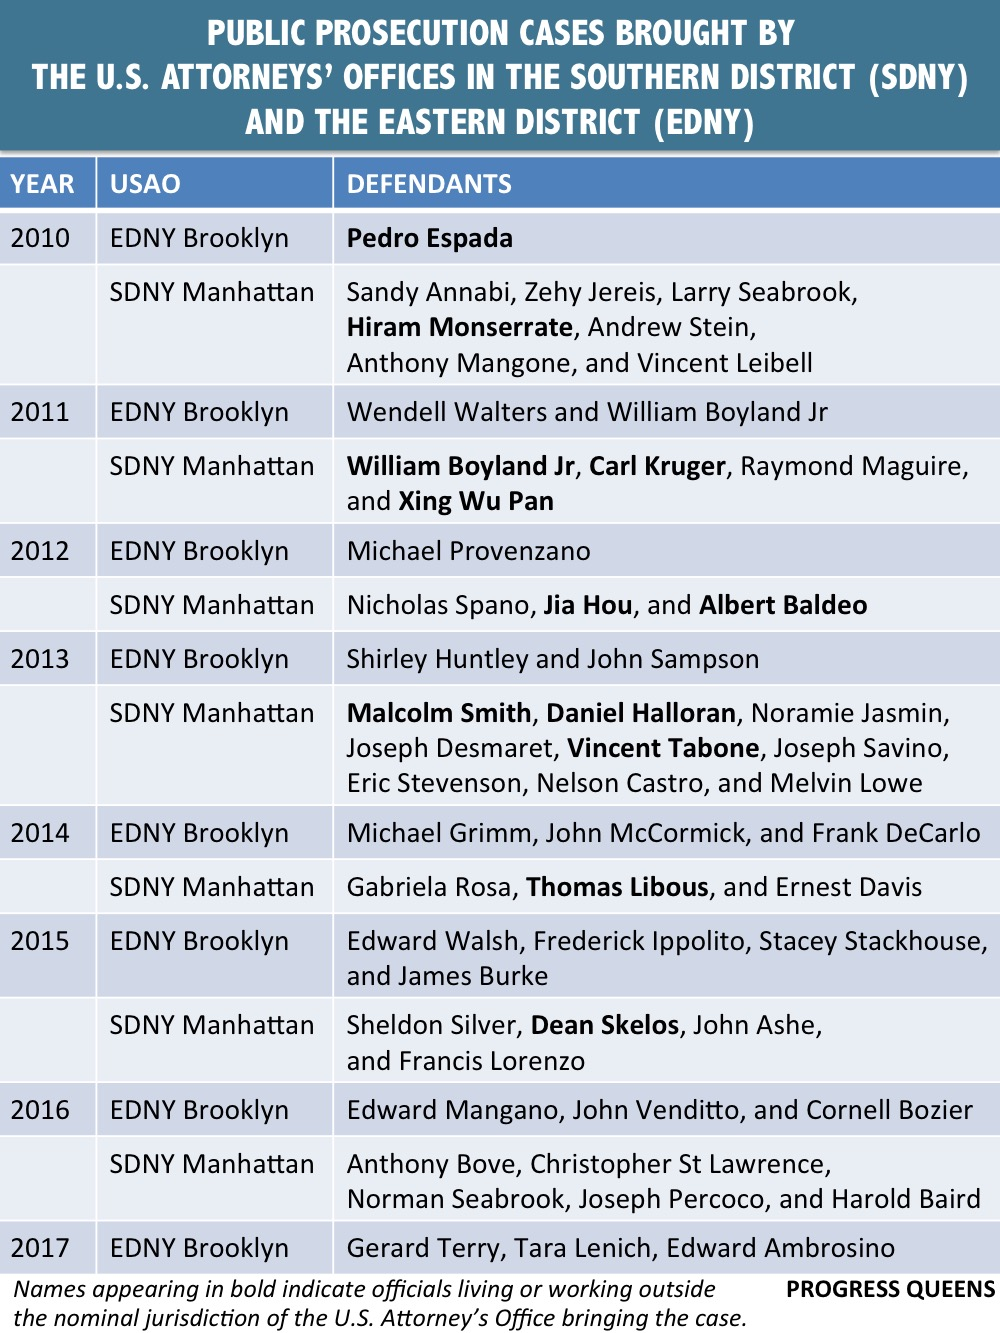 Since 2010, Federal prosecutors in New York City have brought 54 cases of public corruption. Source : Progress Queens